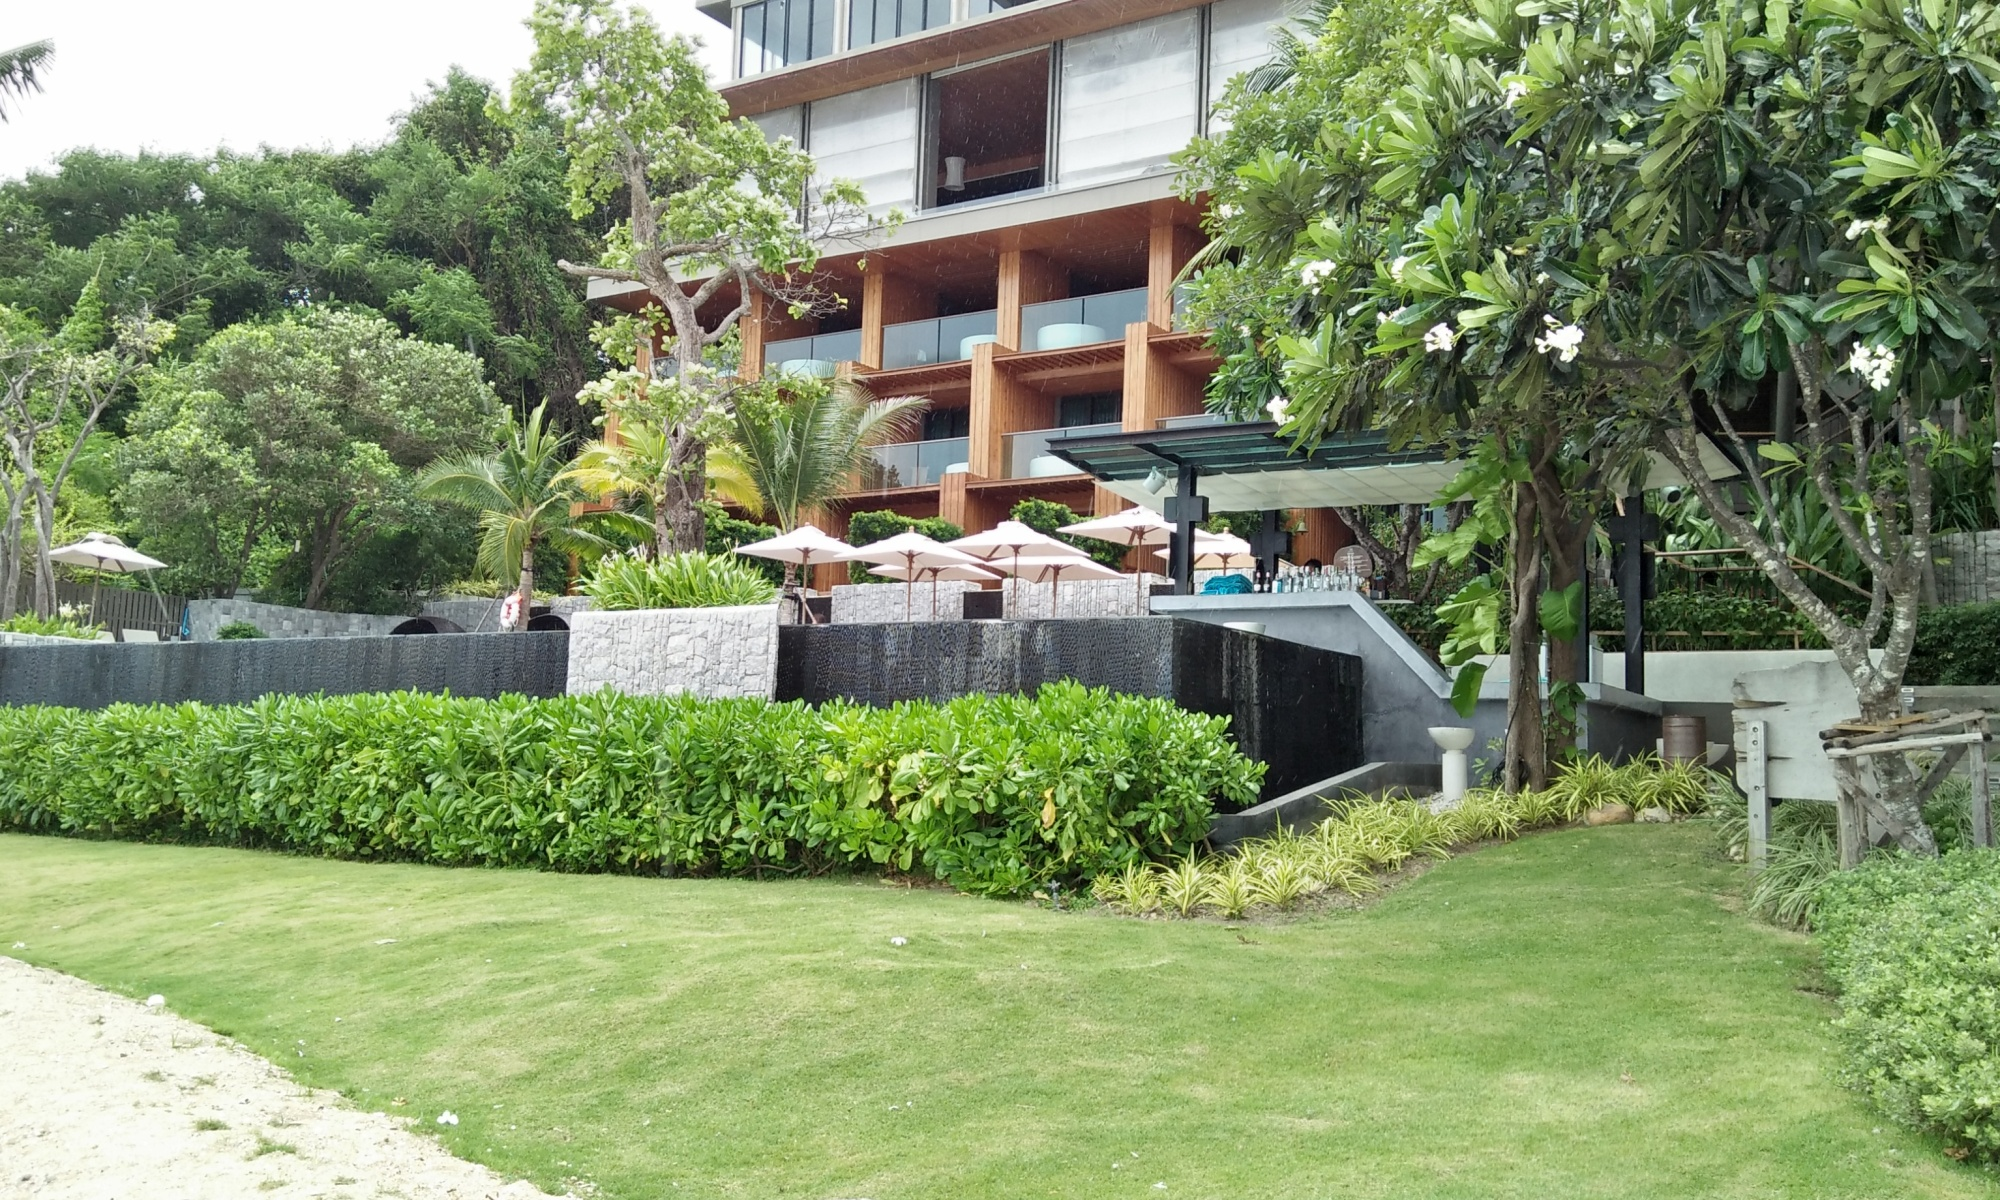 where to stay in pattaya – Accidental Travel Writer